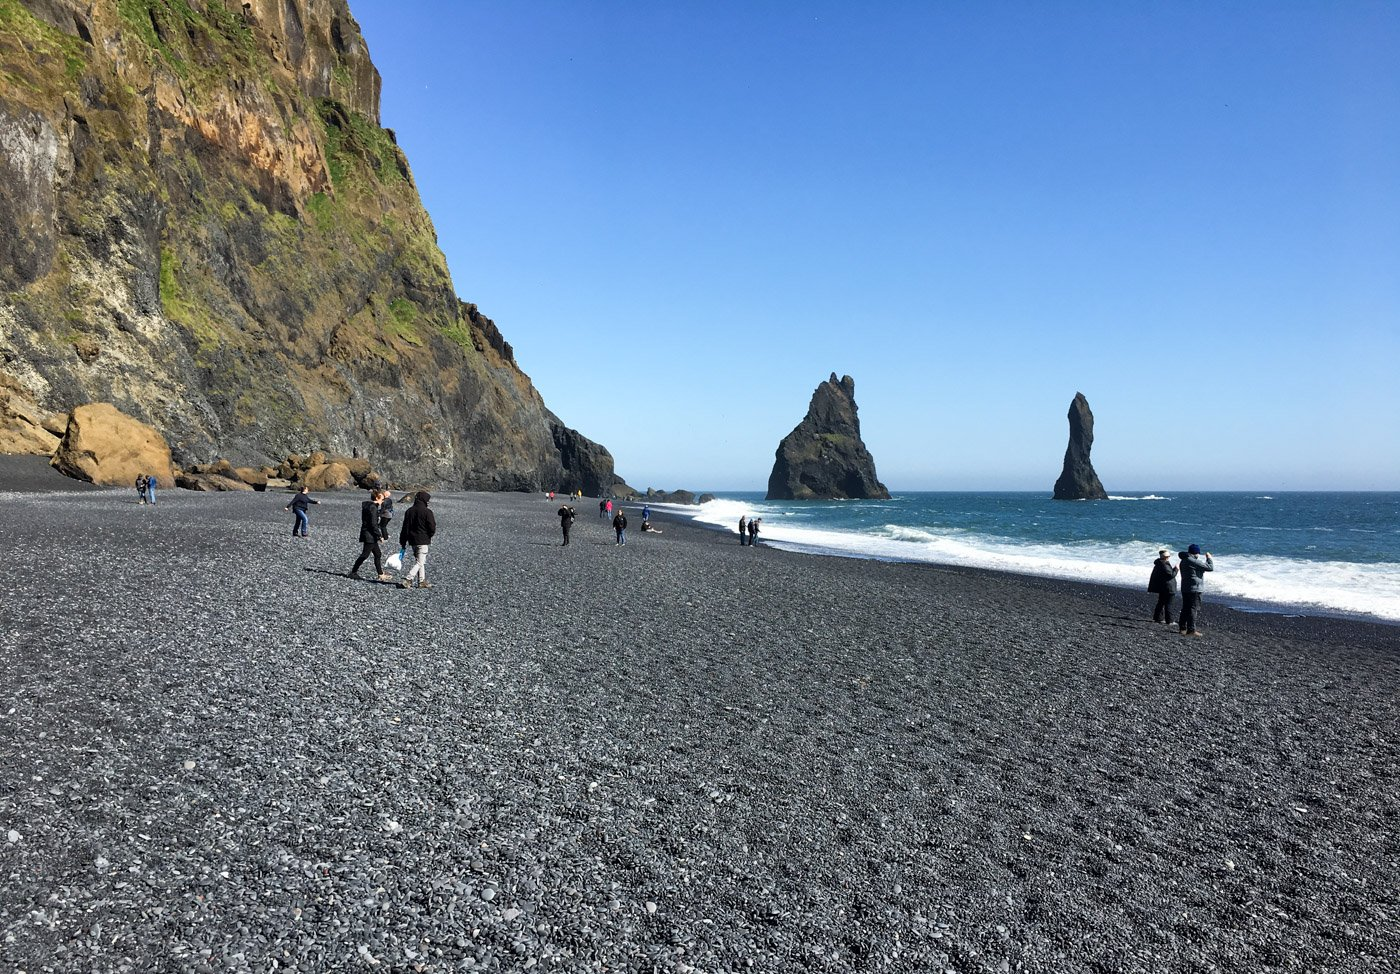 If you've come to Iceland to see incredible waterfalls and black sand beaches, add this self-drive south coast Iceland tour to your itinerary!